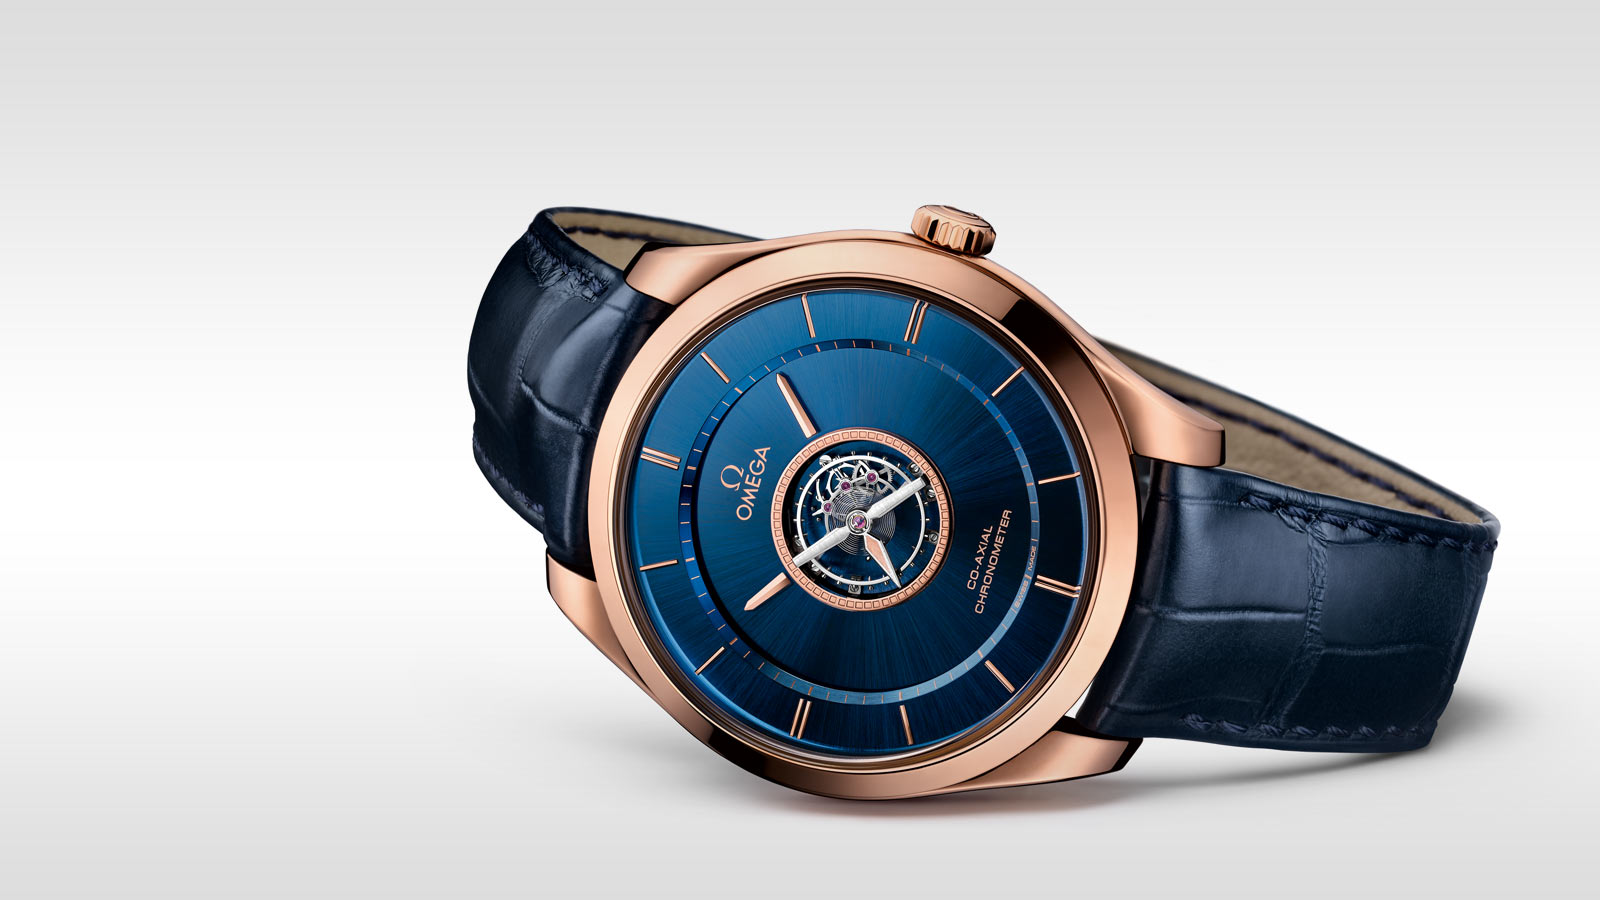 The 44 mm fake watches are designed for men.